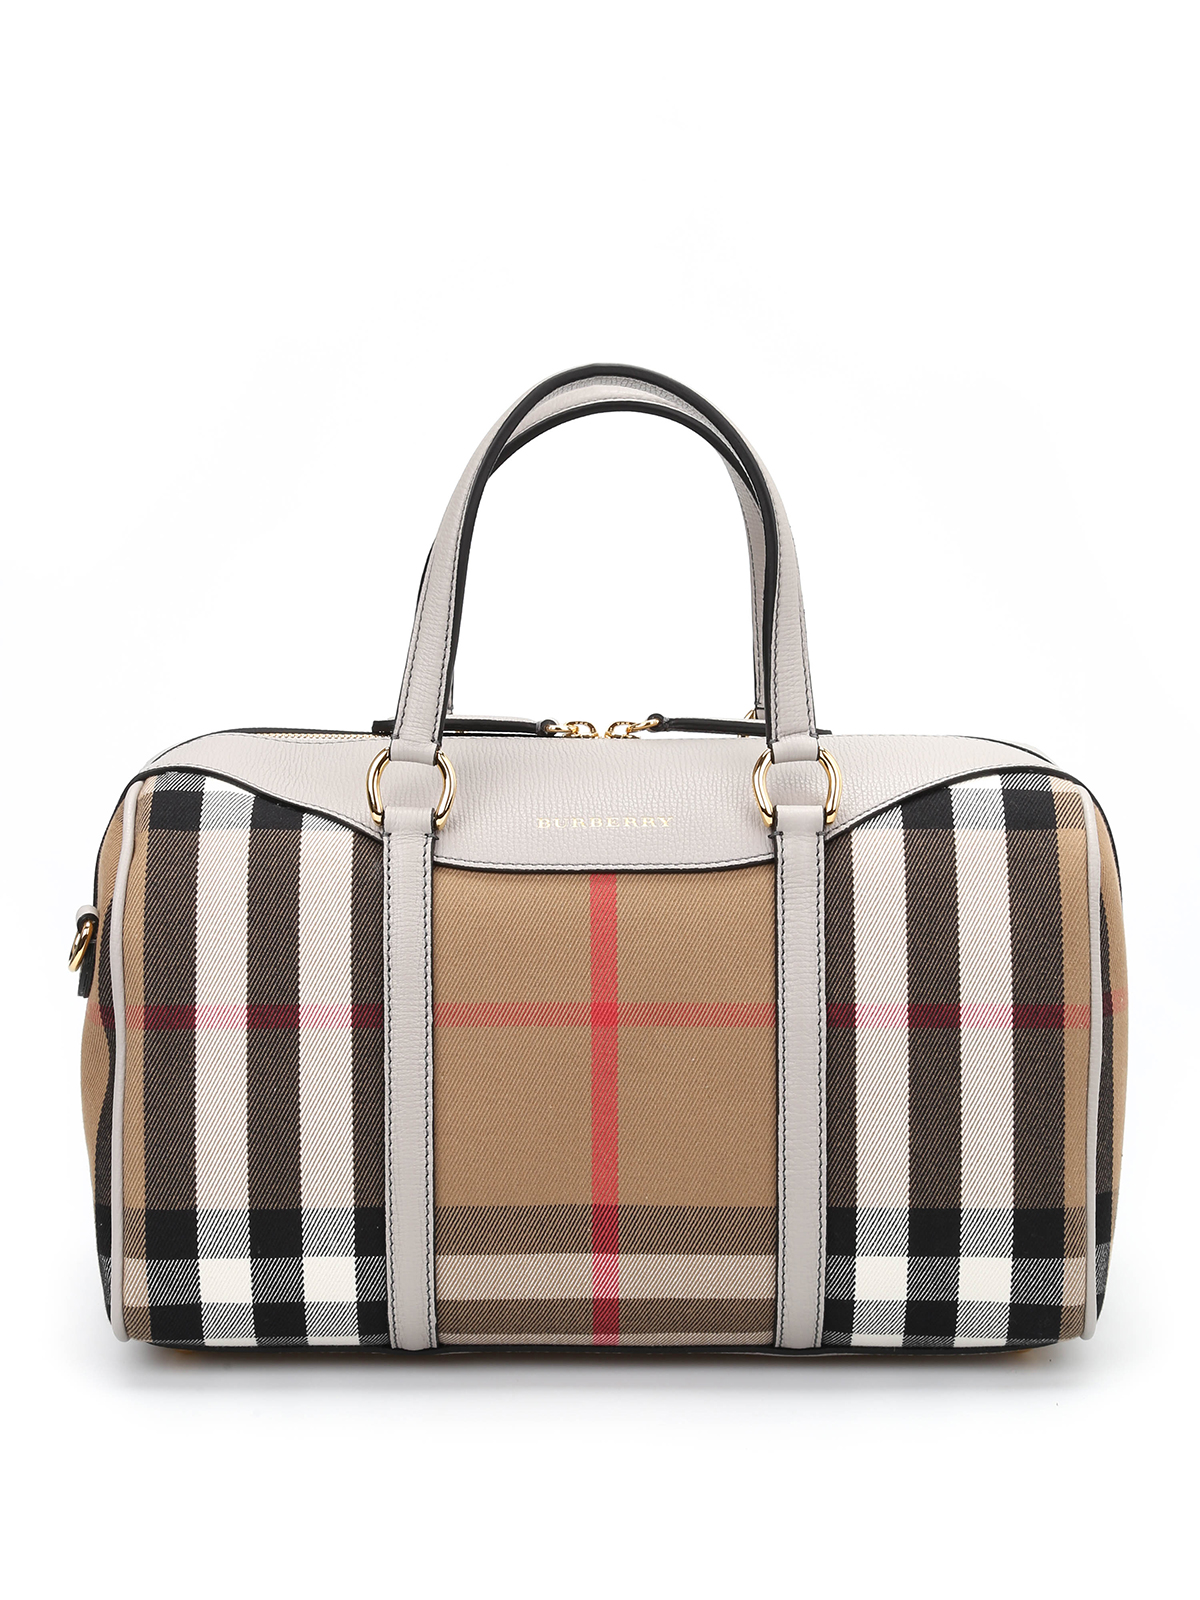 Burberry - Medium Alchester bag - bowling bags - 3997217 1 LIGHT ... 5a6de5399bb07